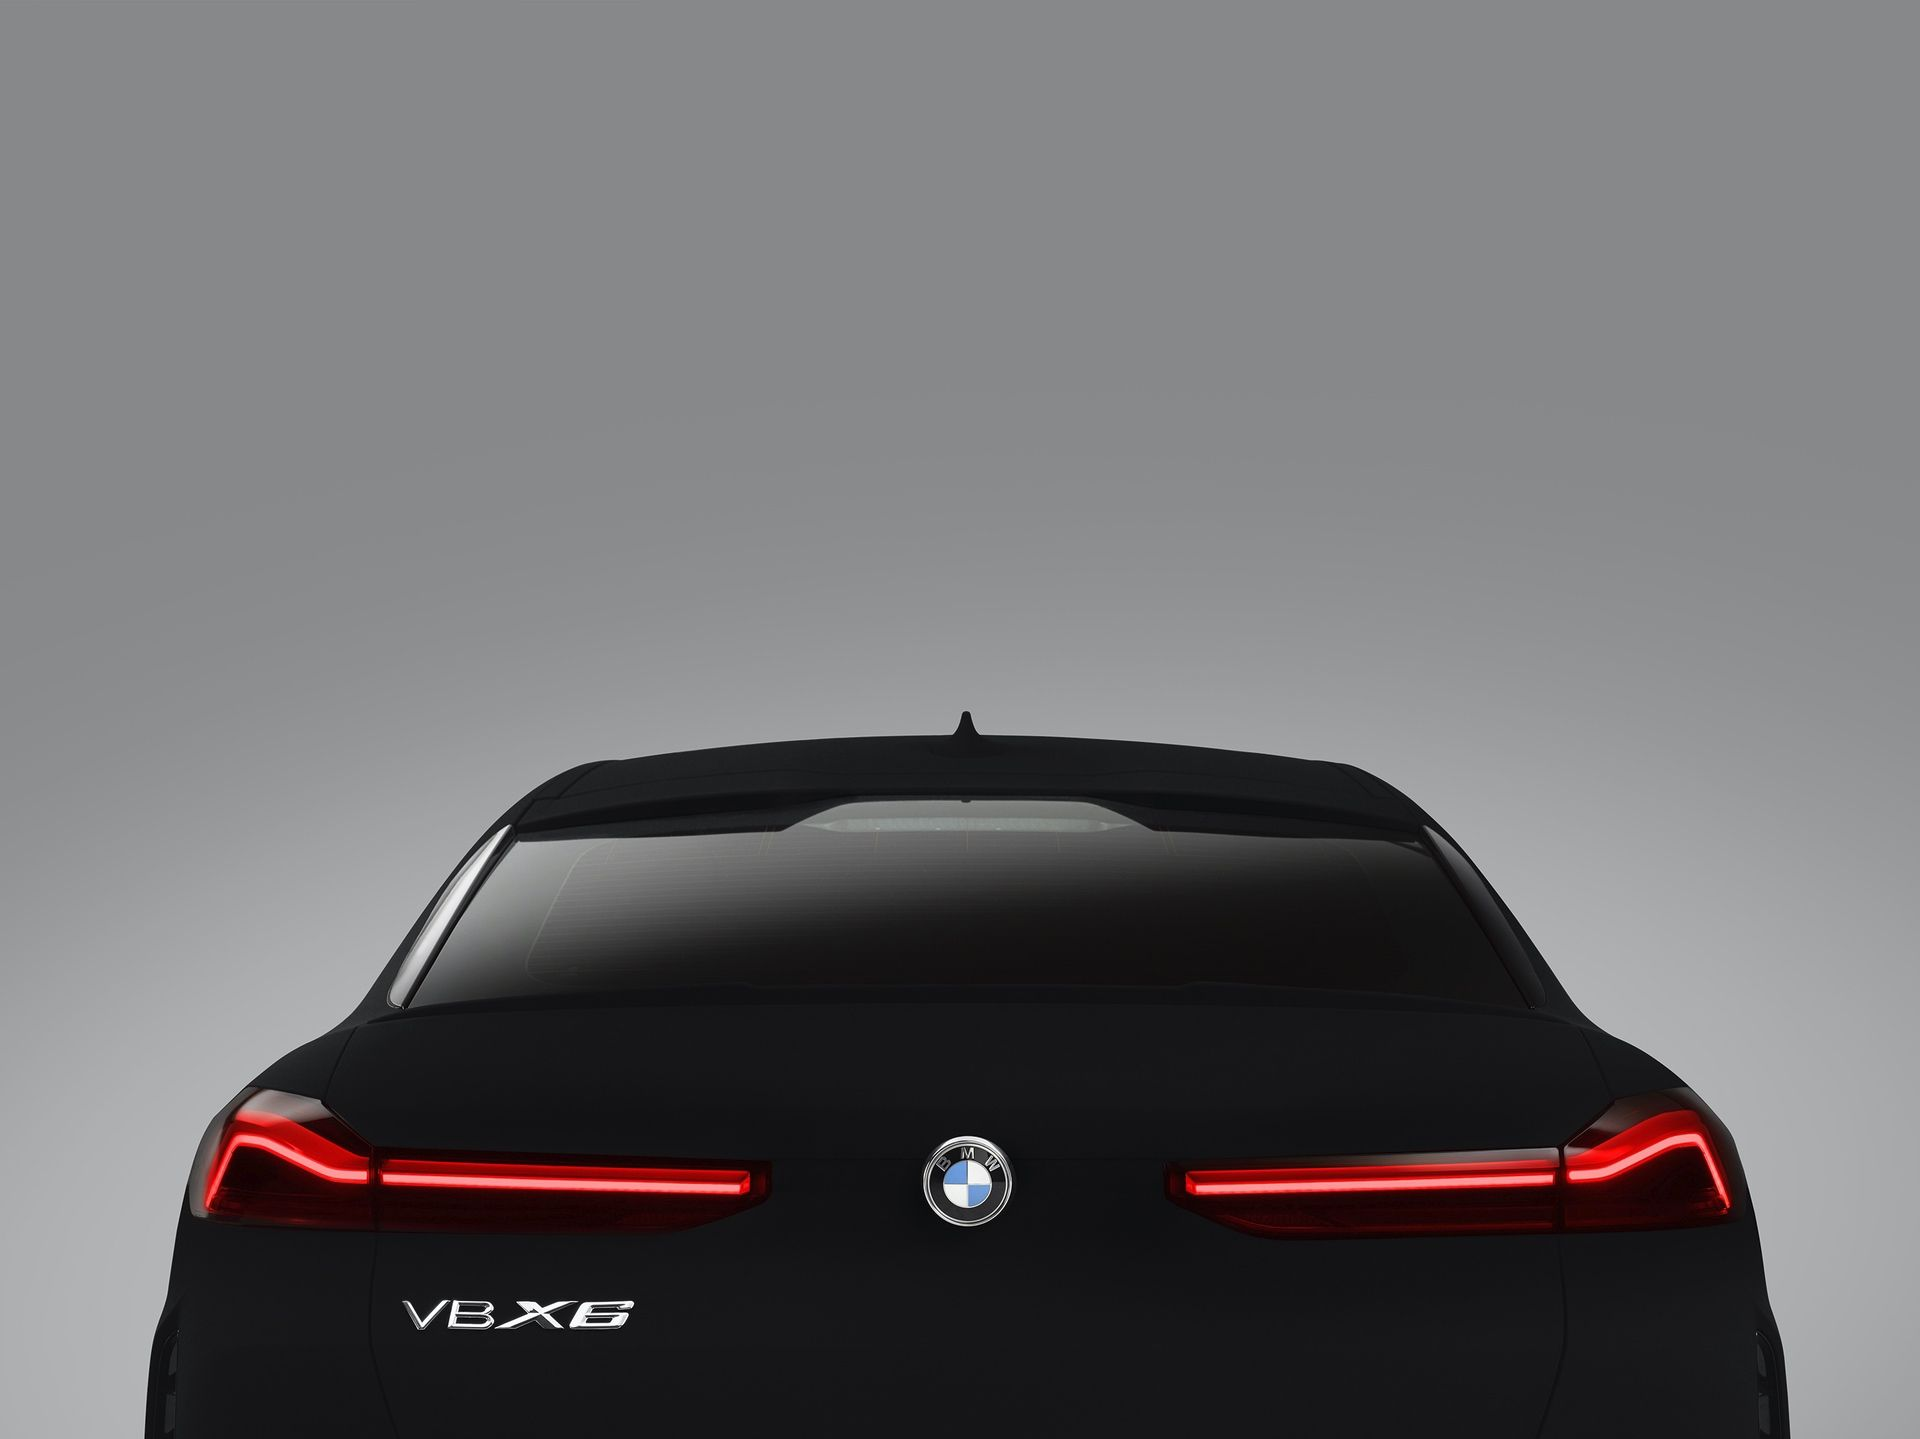 See The New Bmw X6 Vantablack In Motion And Out On The Street Bmw X6 New Bmw Bmw